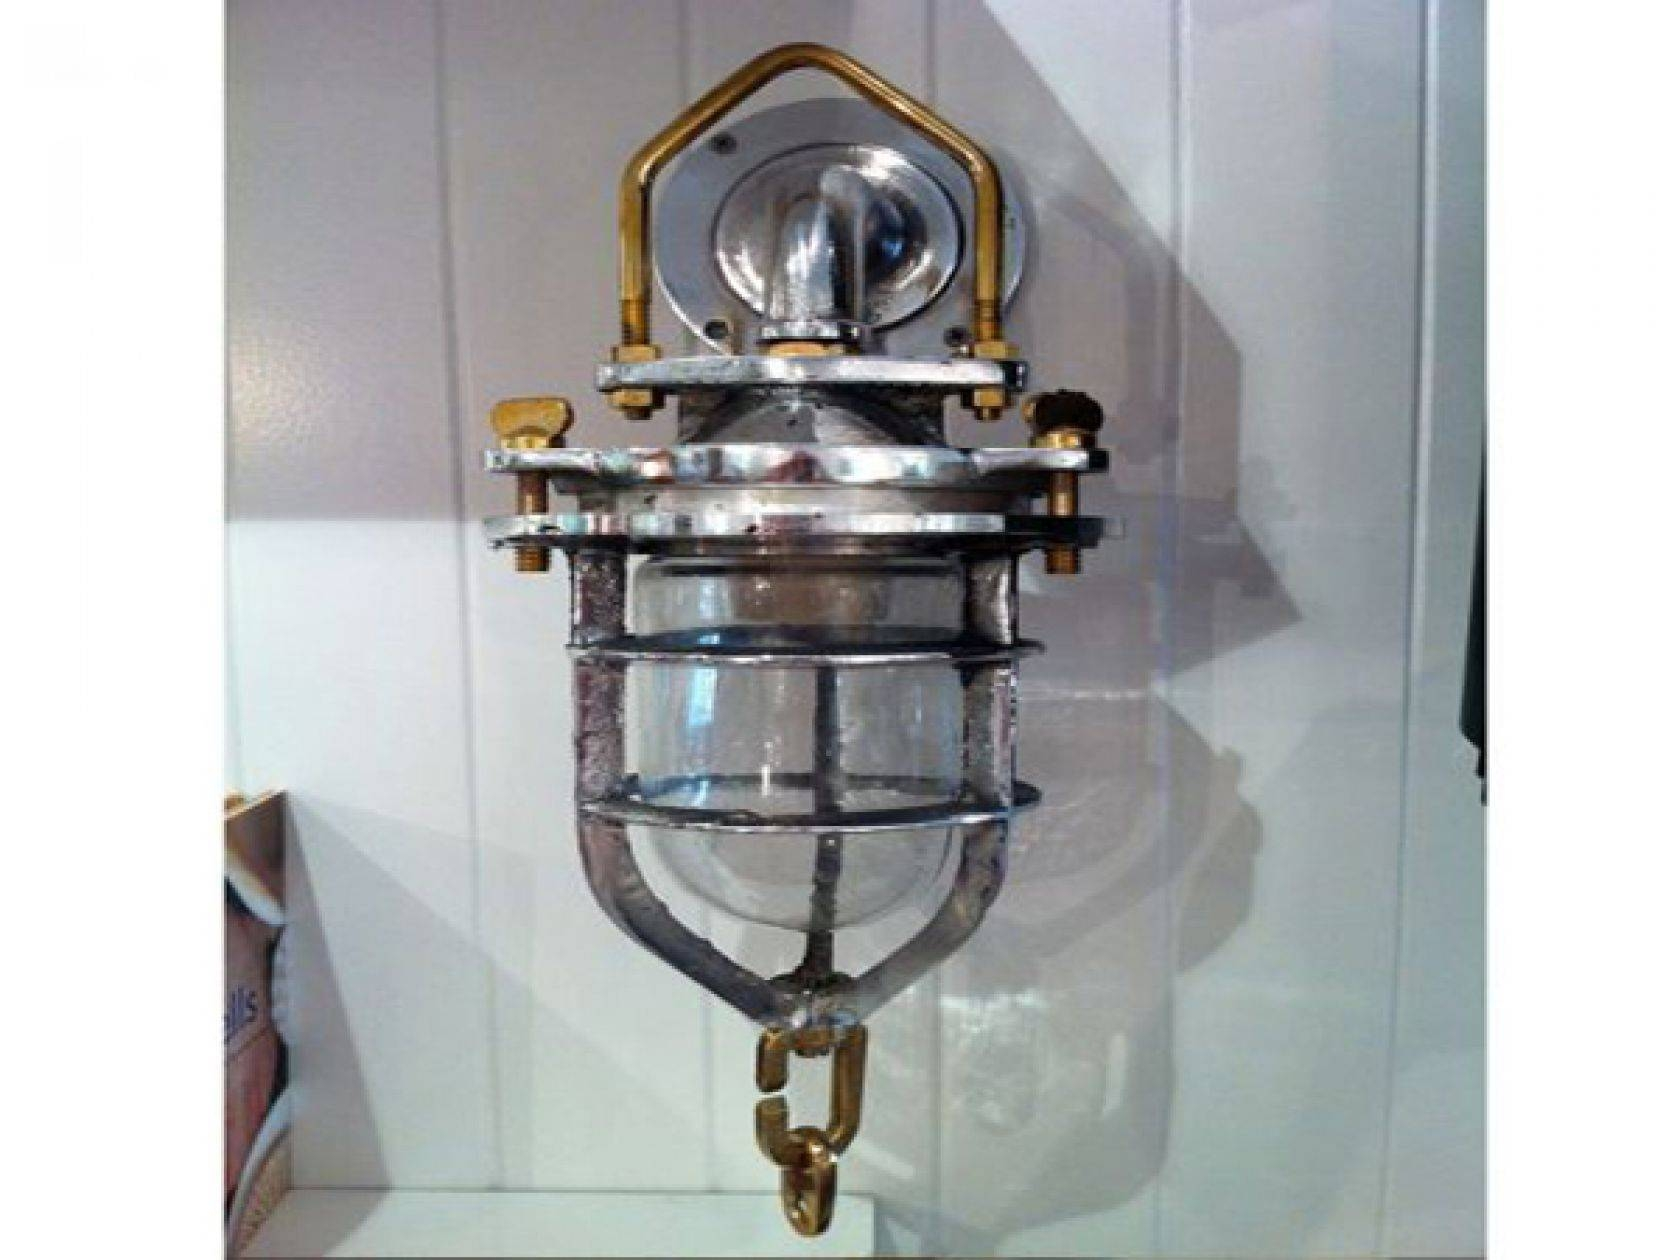 Sconce Light Fixtures With Coastal Style Perfect For The Beach House within Beachy Lighting (Image 15 of 15)